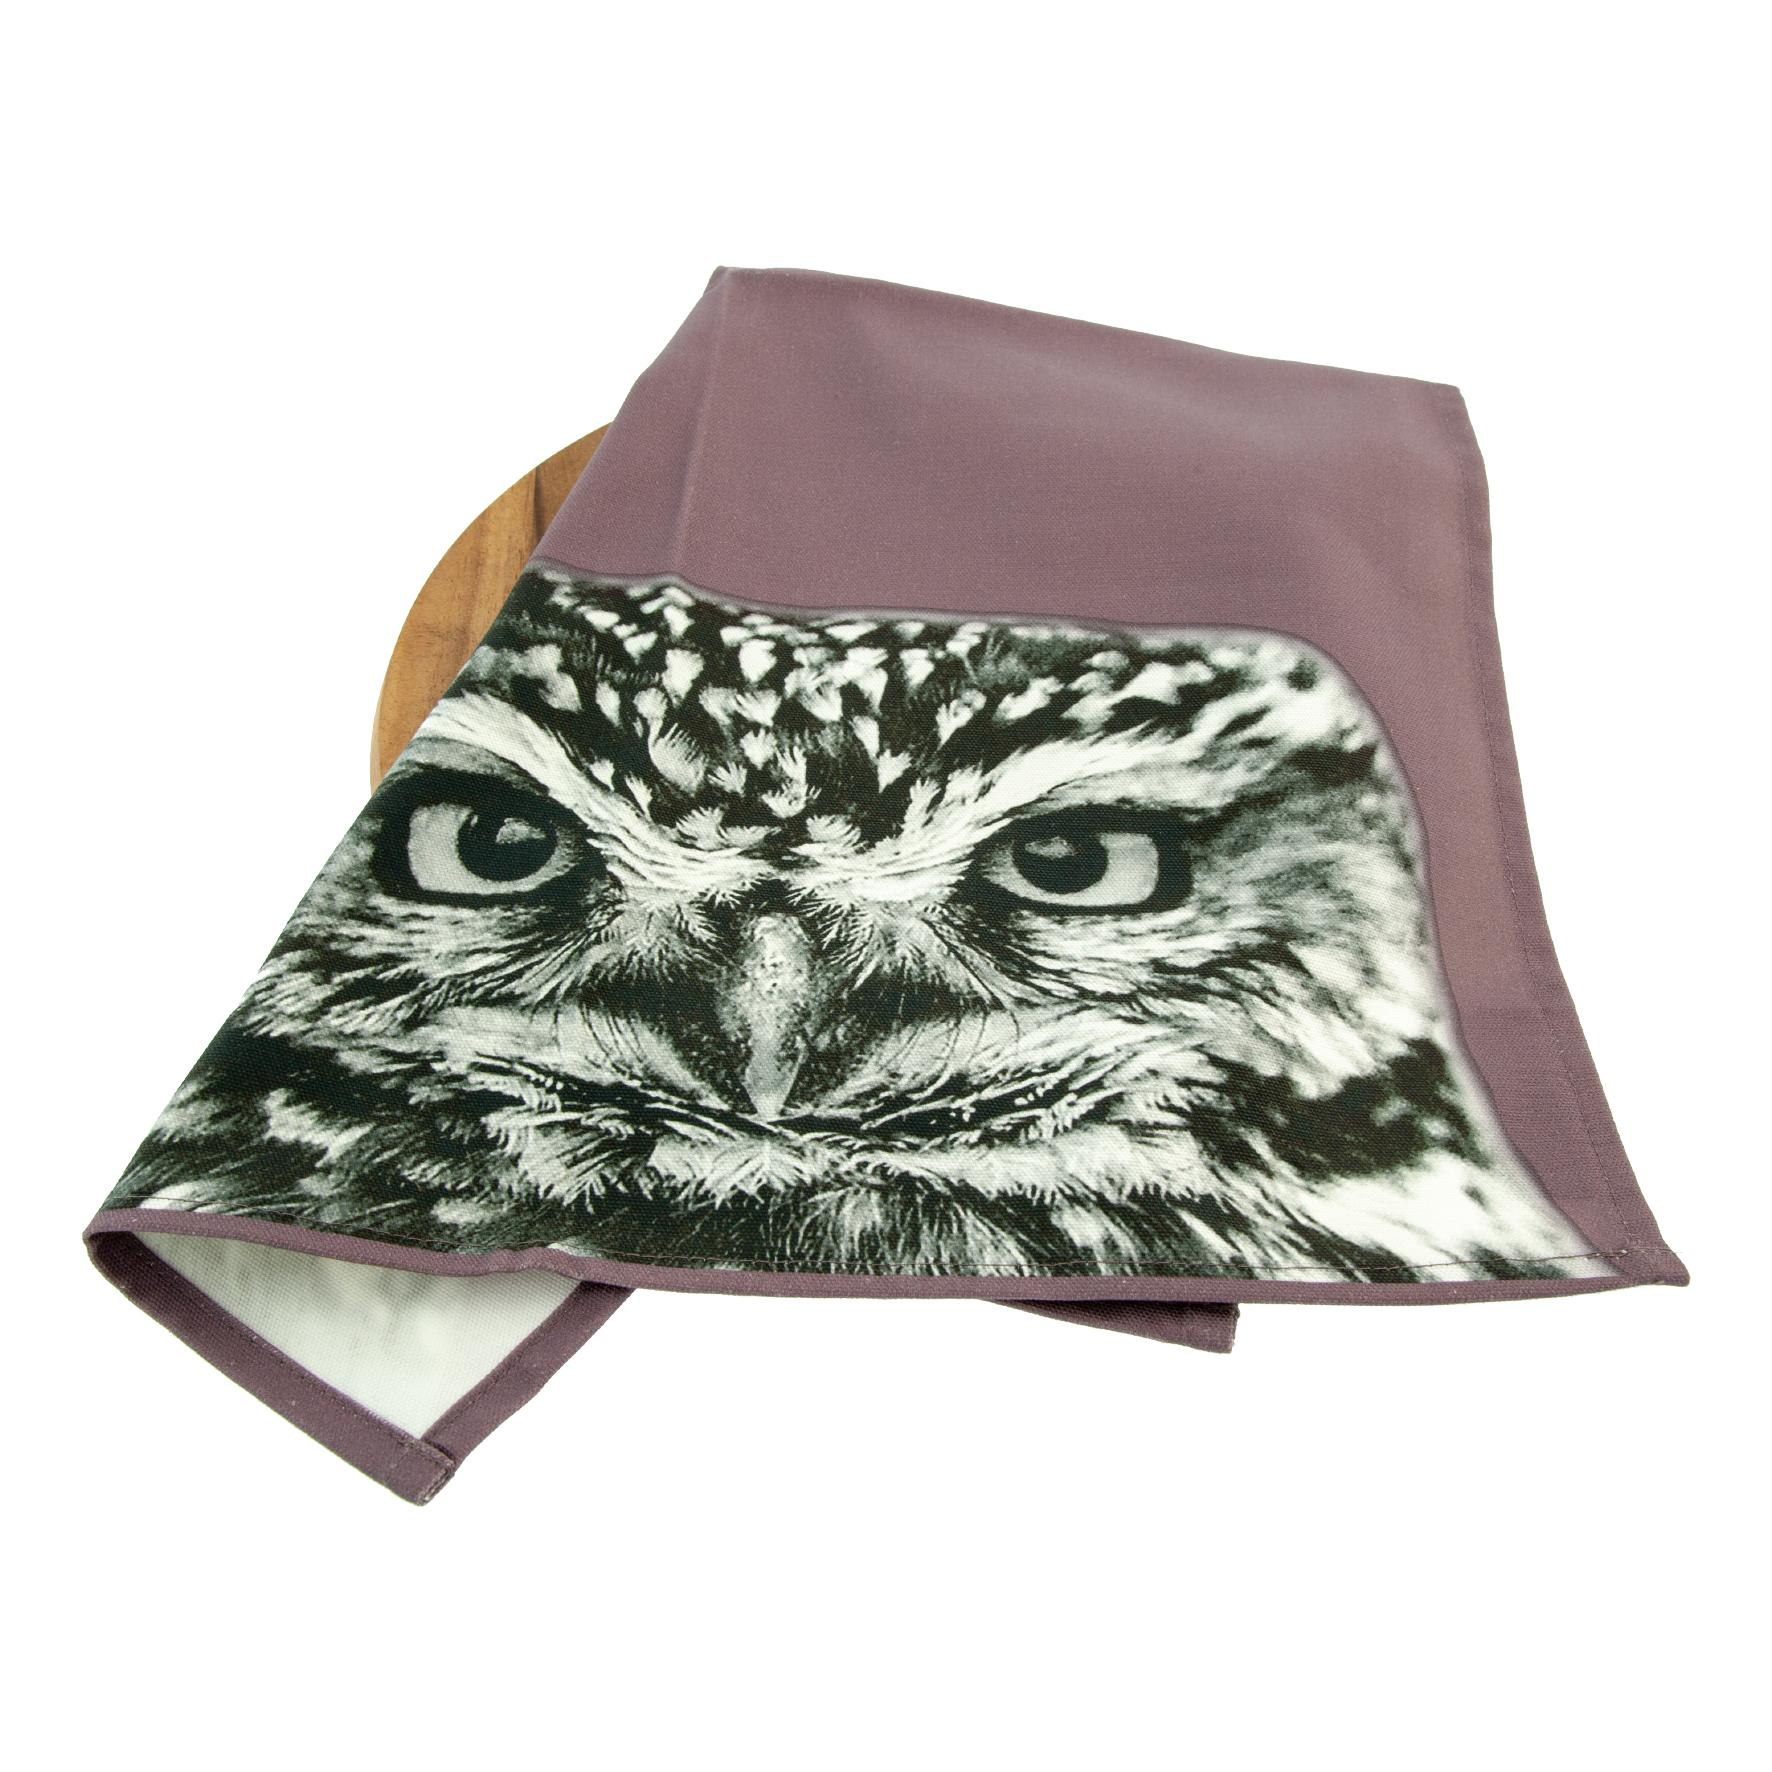 Little owl tea towel on dusky pink